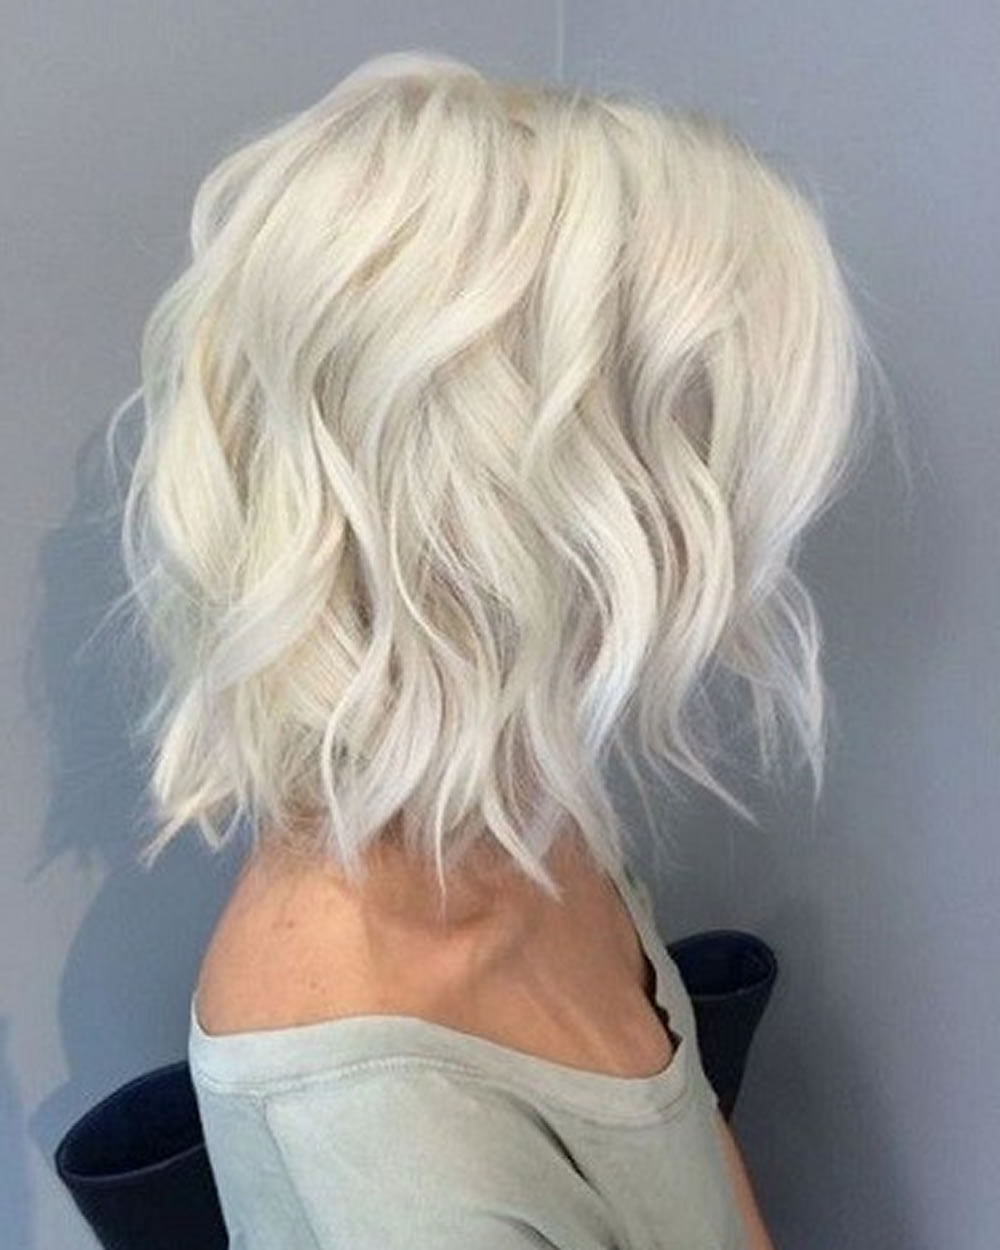 Balayage Ombre Highlights 2021: Dark, Brunette, Blonde Etc Throughout Short Bob Hairstyles With Balayage Ombre (View 7 of 20)